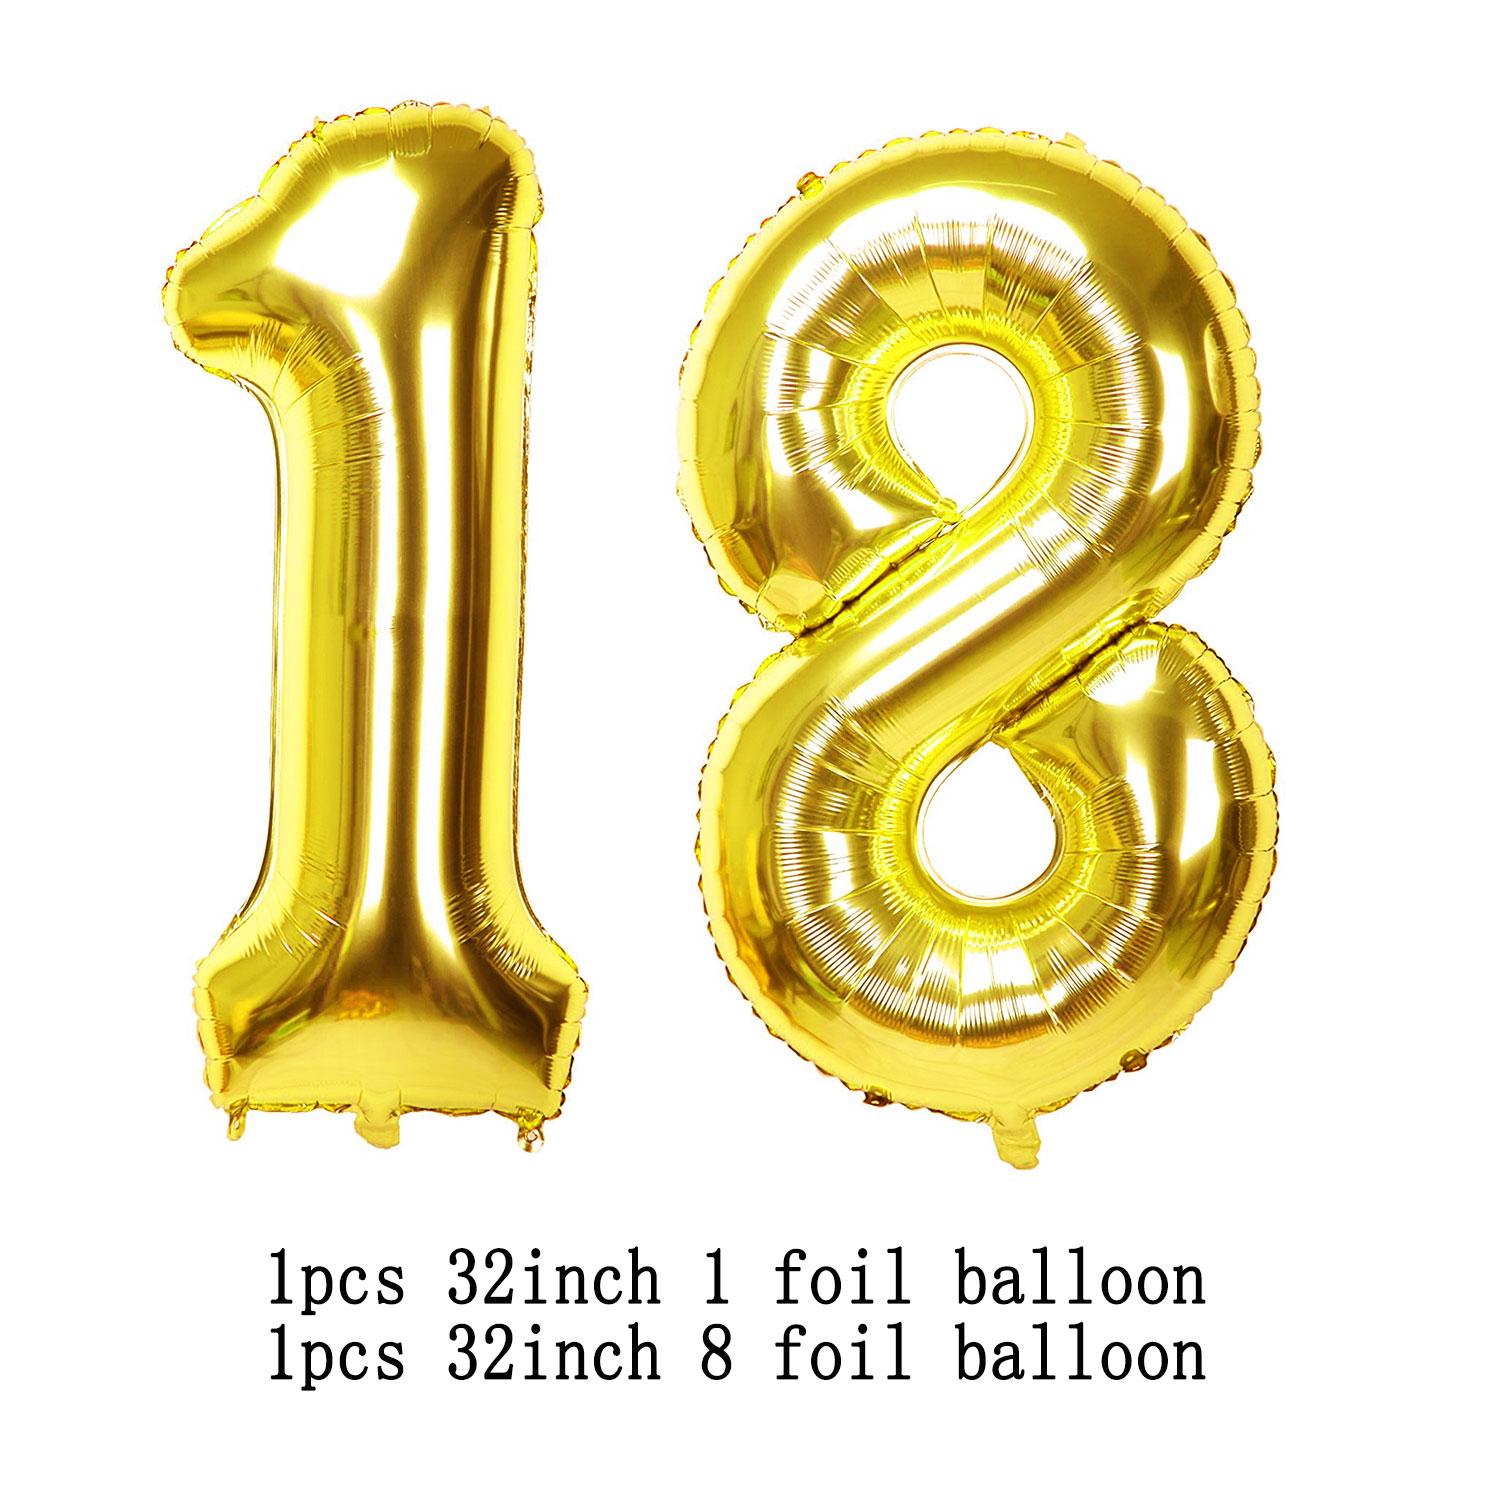 Amawill 18th Birthday Decorations Adult 32inch Gold Number Balloons Black Happy Banner Latex Globos Mylar Heart 8D In Party DIY From